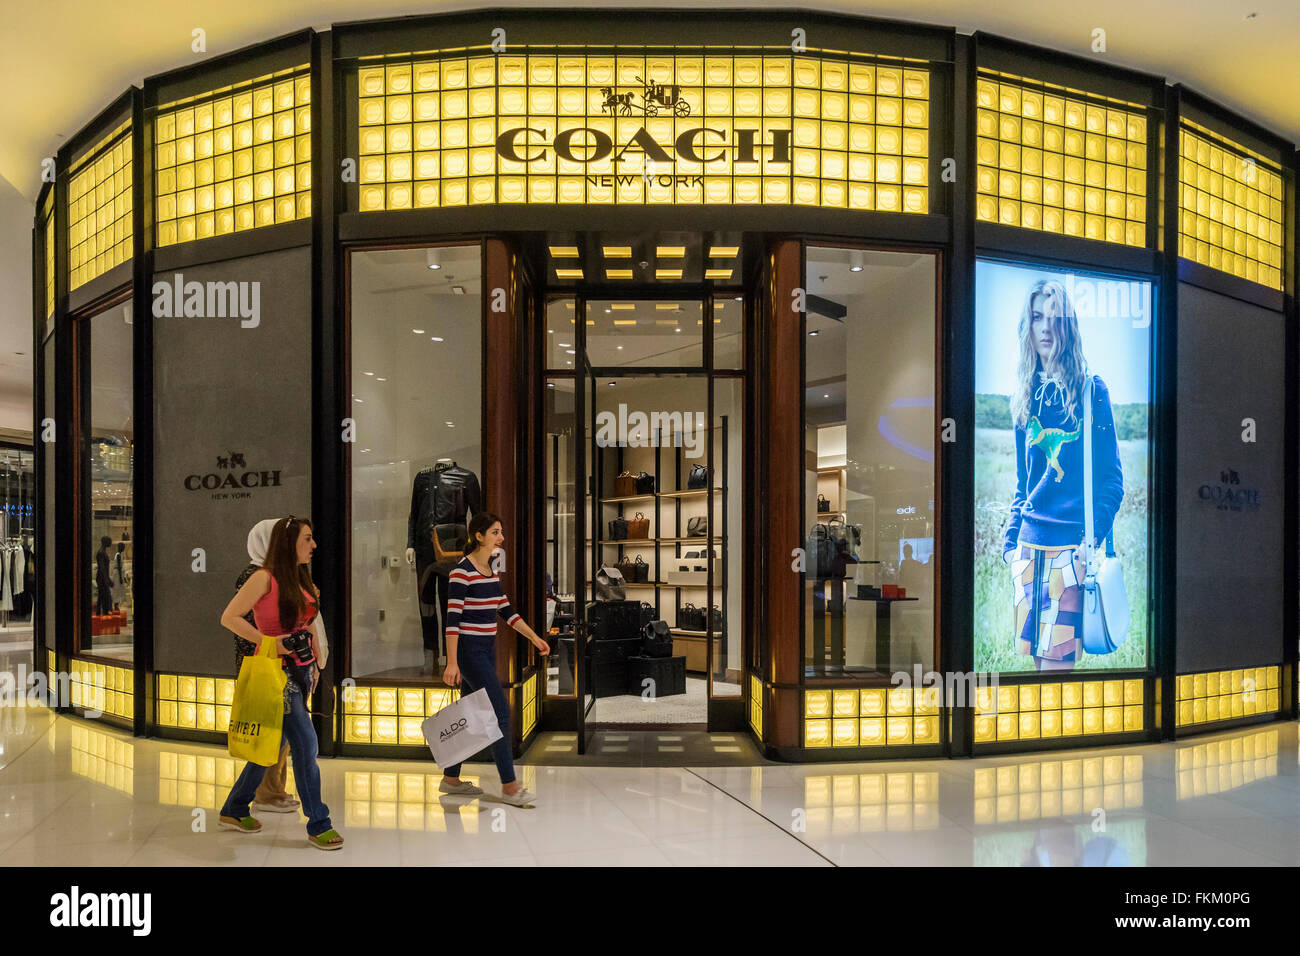 Entrenador fashion shop en Dubai Mall Dubai Emiratos Arabes Unidos Imagen De Stock